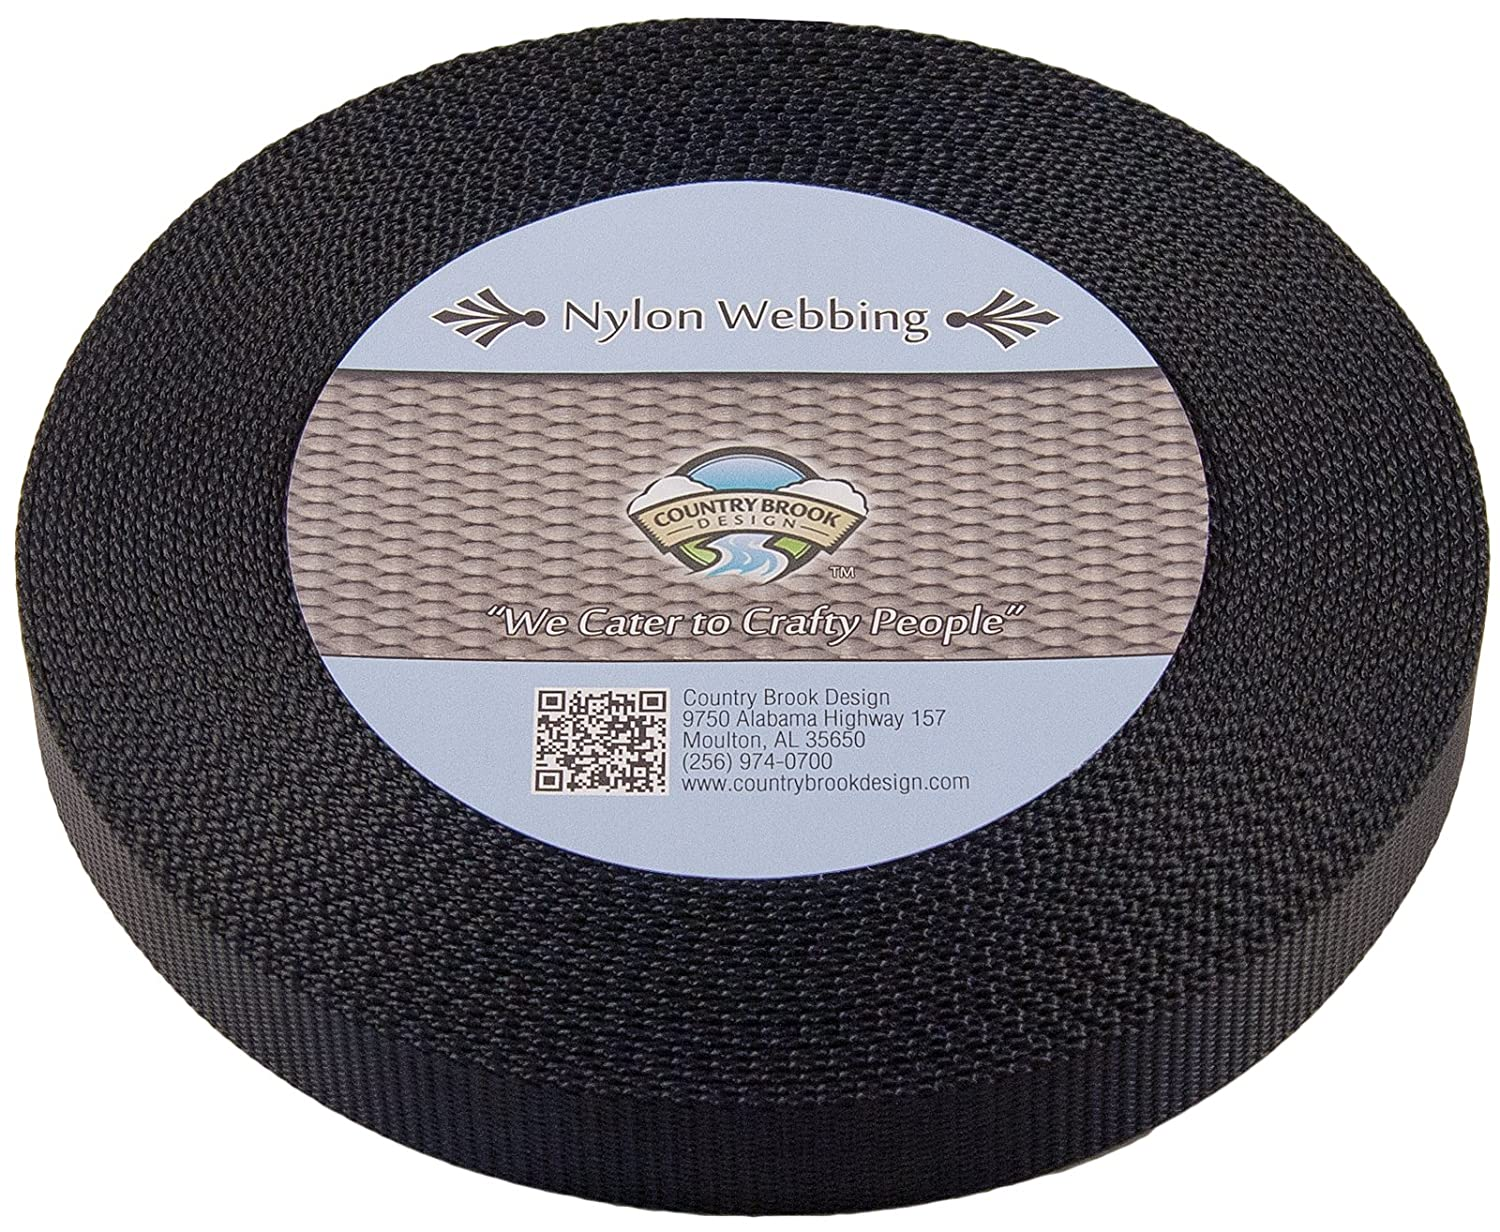 amazon com country brook design 3 4 inch black nylon heavy amazon com country brook design 3 4 inch black nylon heavy webbing 10 yards climbing webbing sports outdoors